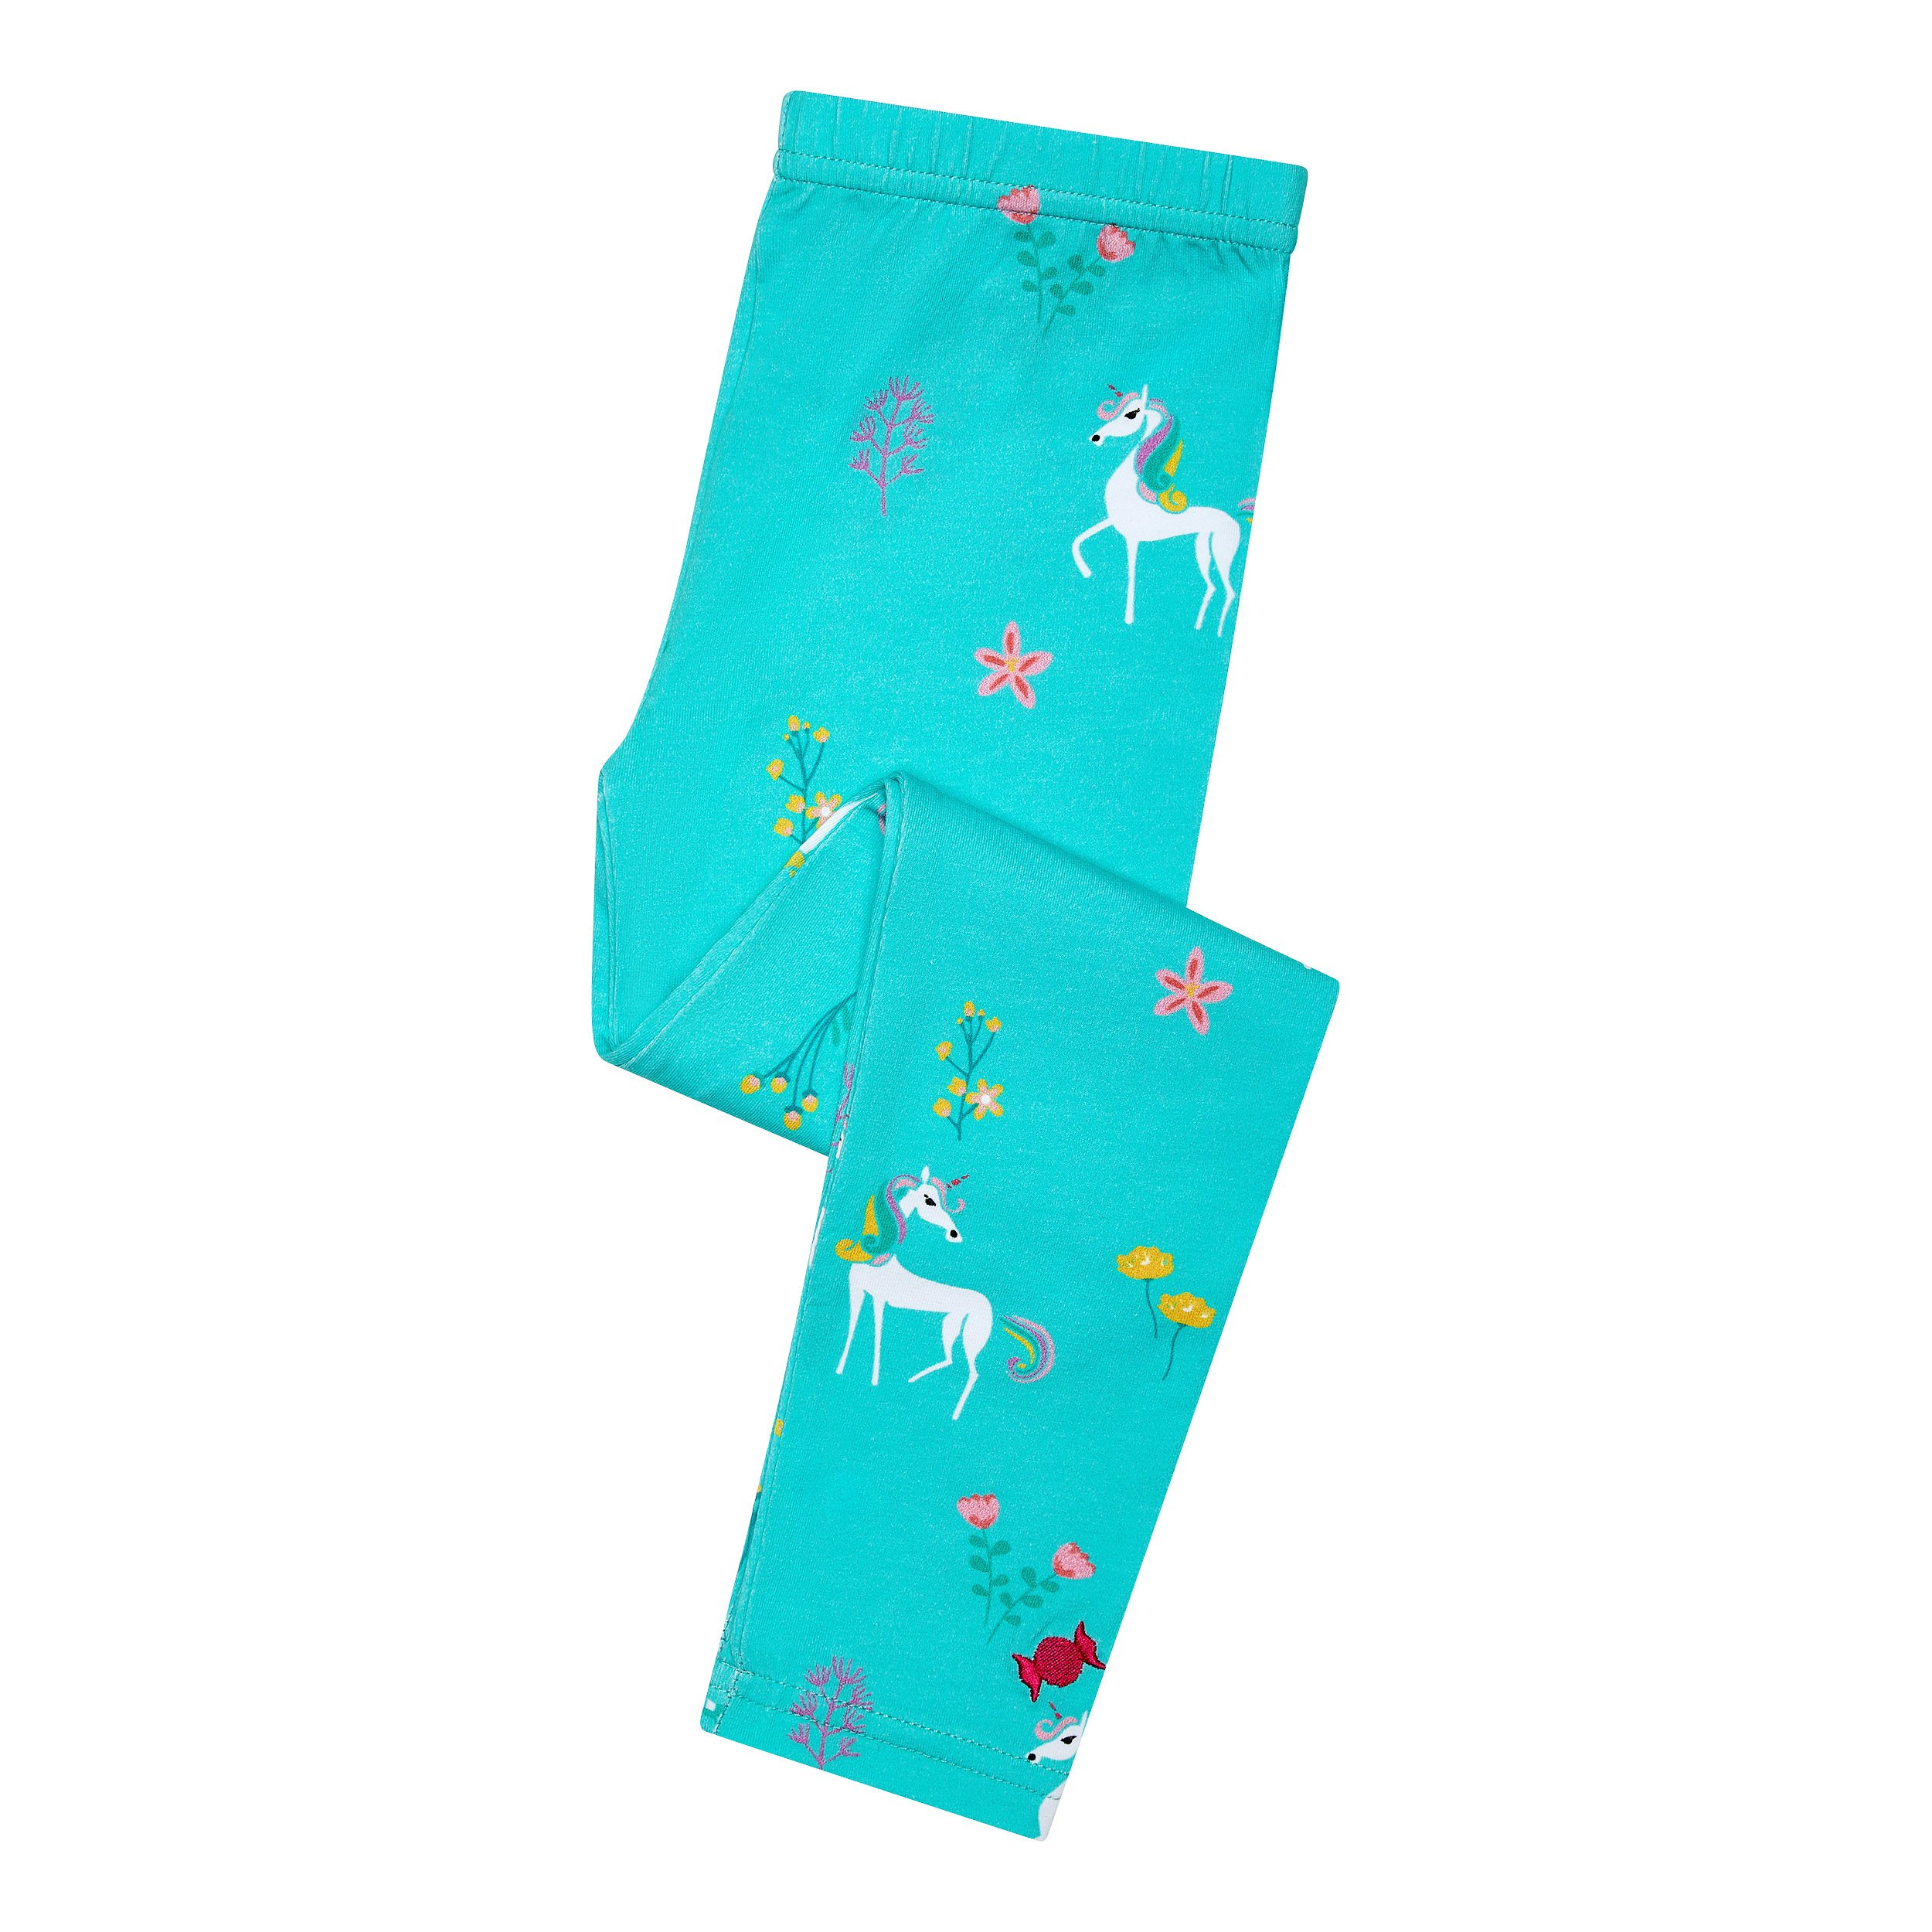 BonBon Clouds Girls Leggings Unicorns - 95% Cotton and 5% Spandex - Active Wear for Babies, Toddlers and Kids (5/6) by BonBon Clouds (Image #2)